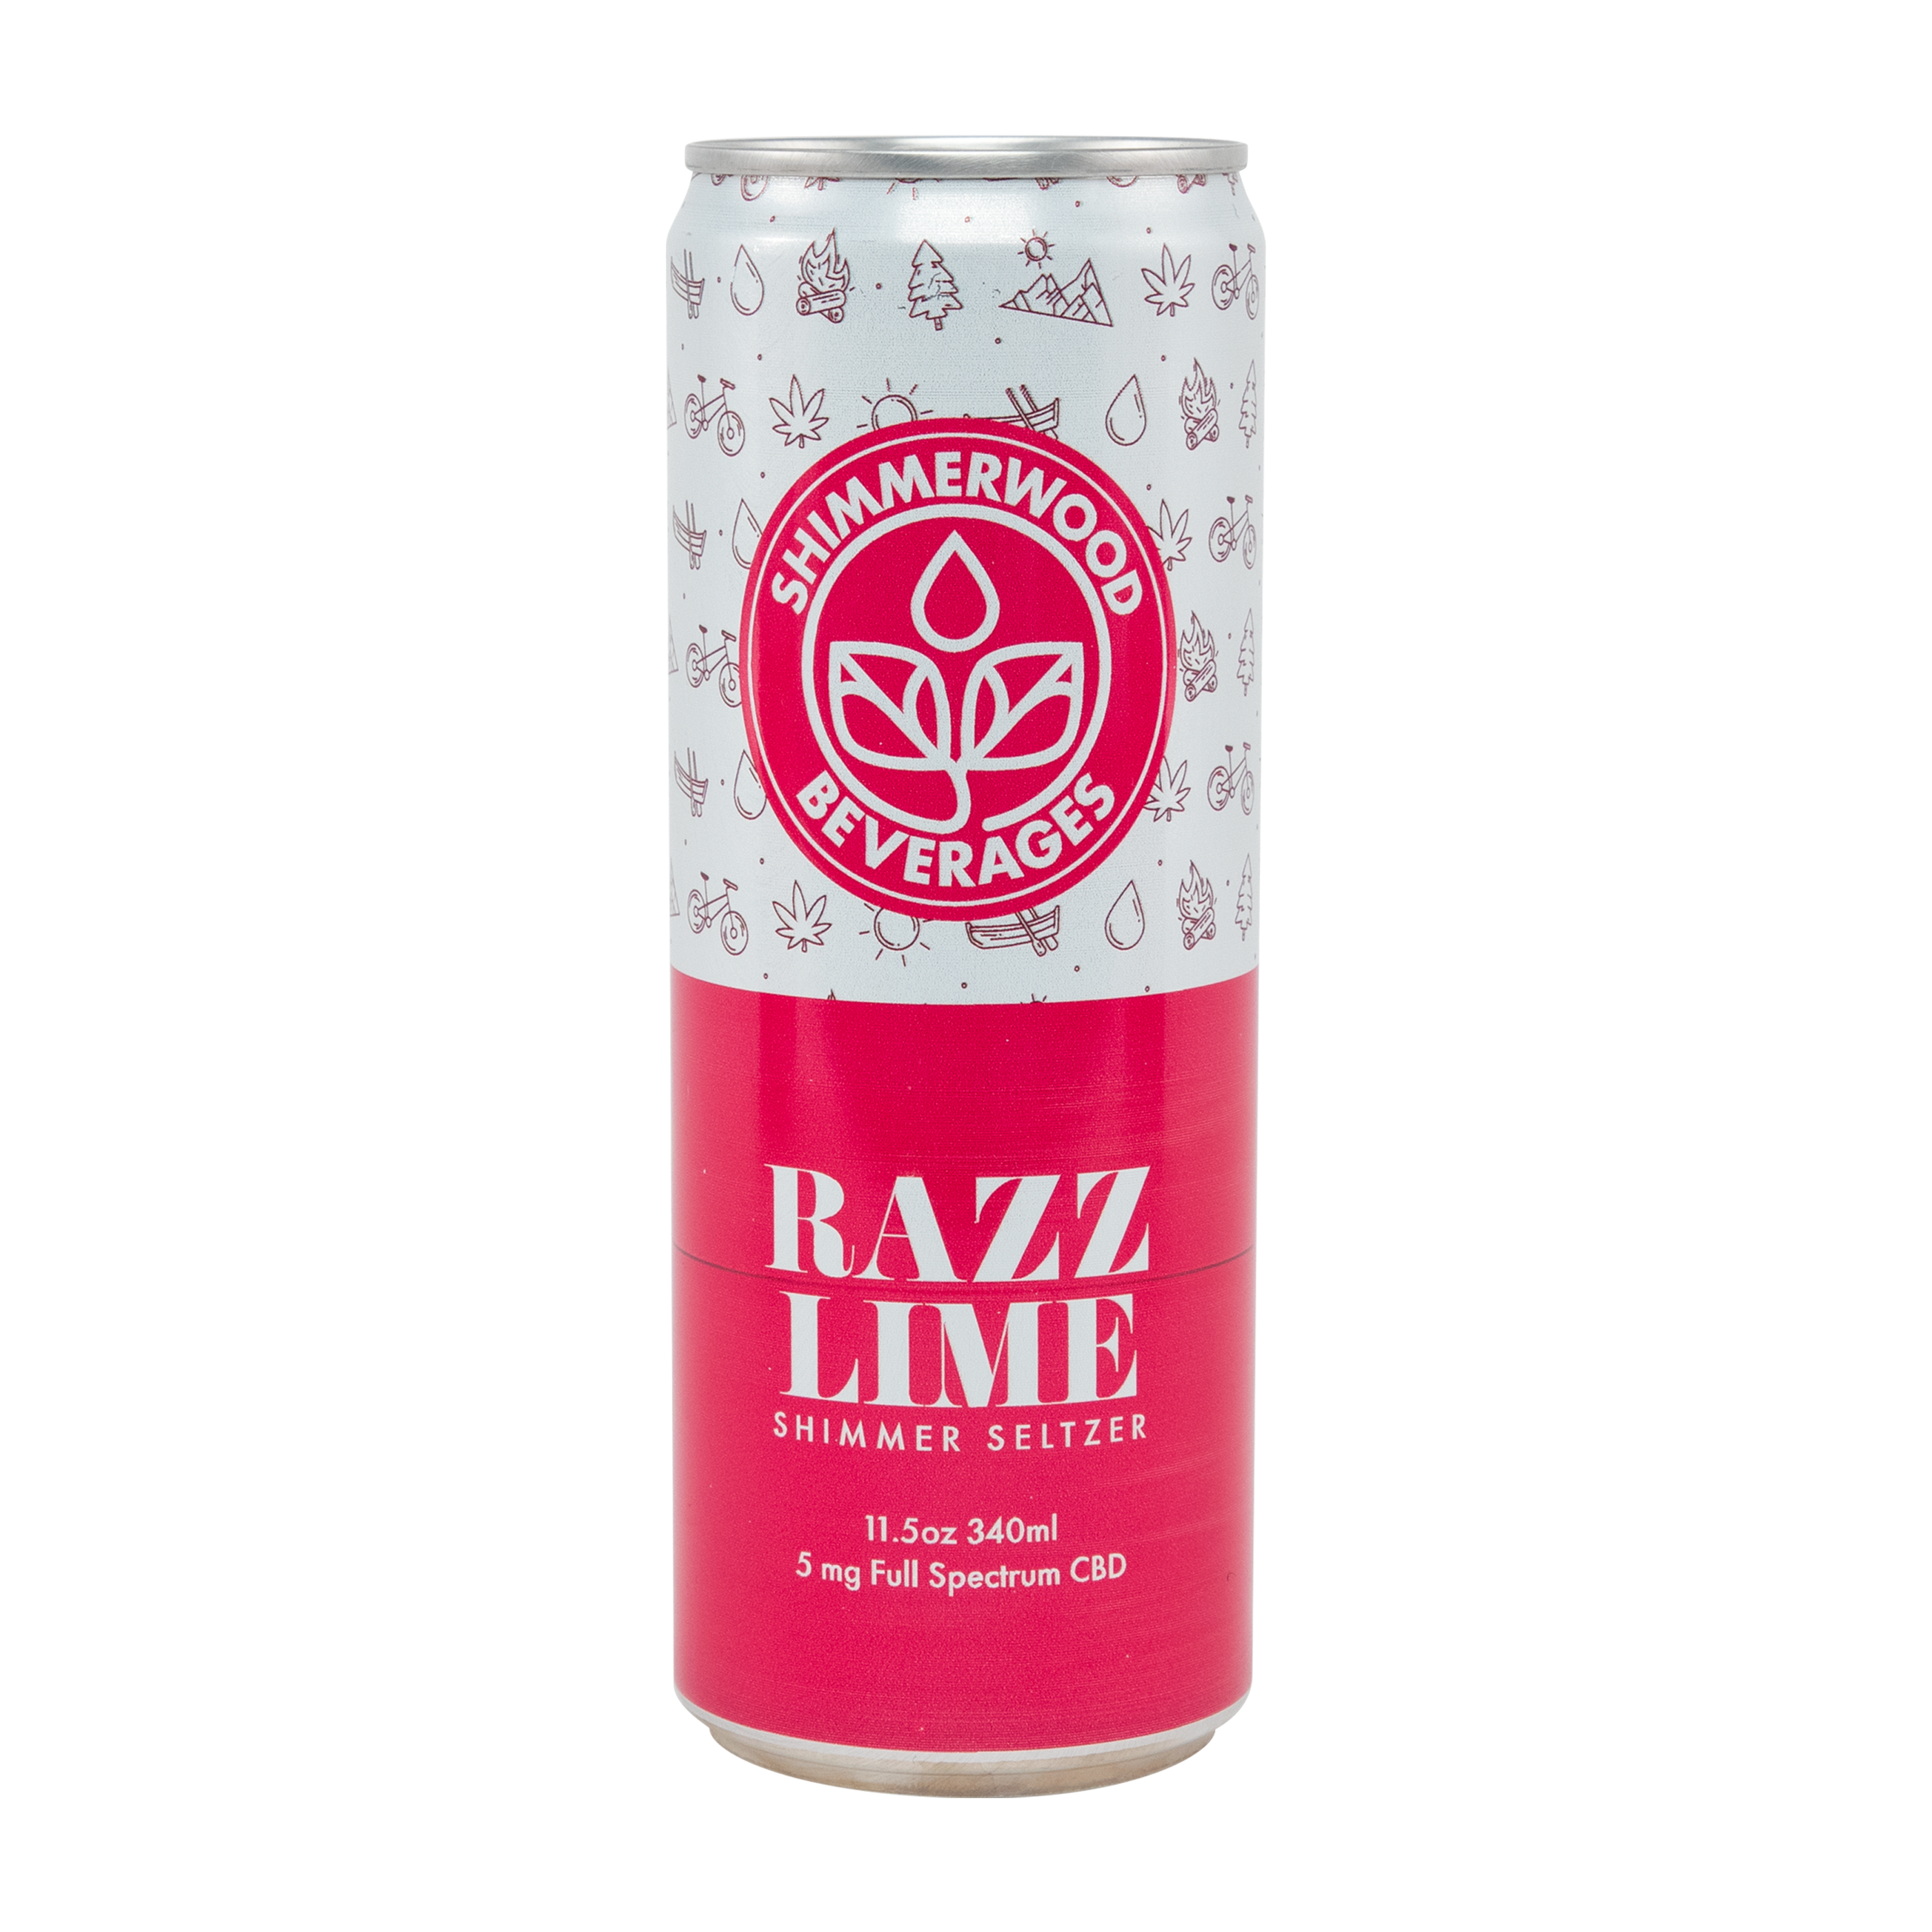 Shimmerwood Beverages: Photo of Razz Lime - Shimmerwood Beverages (uploaded by company)